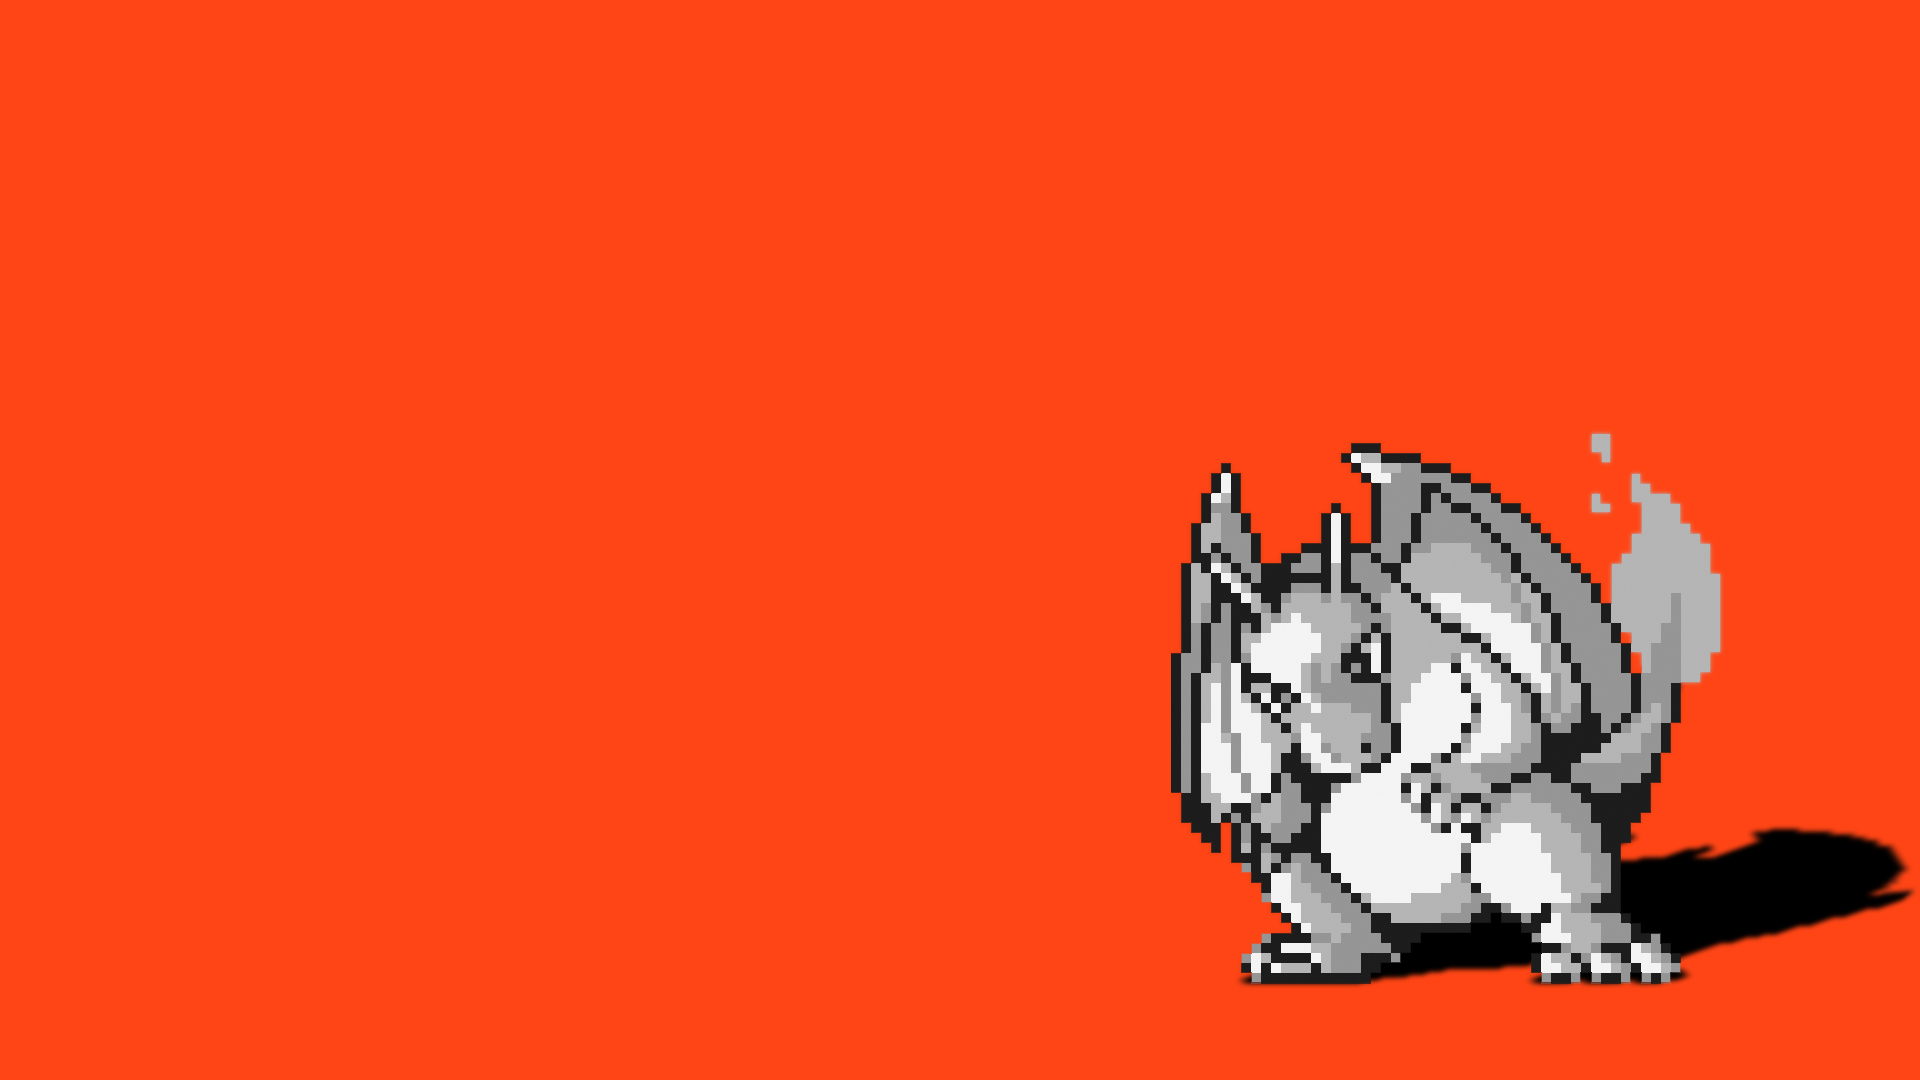 Pokemon Charizard Wallpaper 1920x1080 Pokemon Charizard 1920x1080